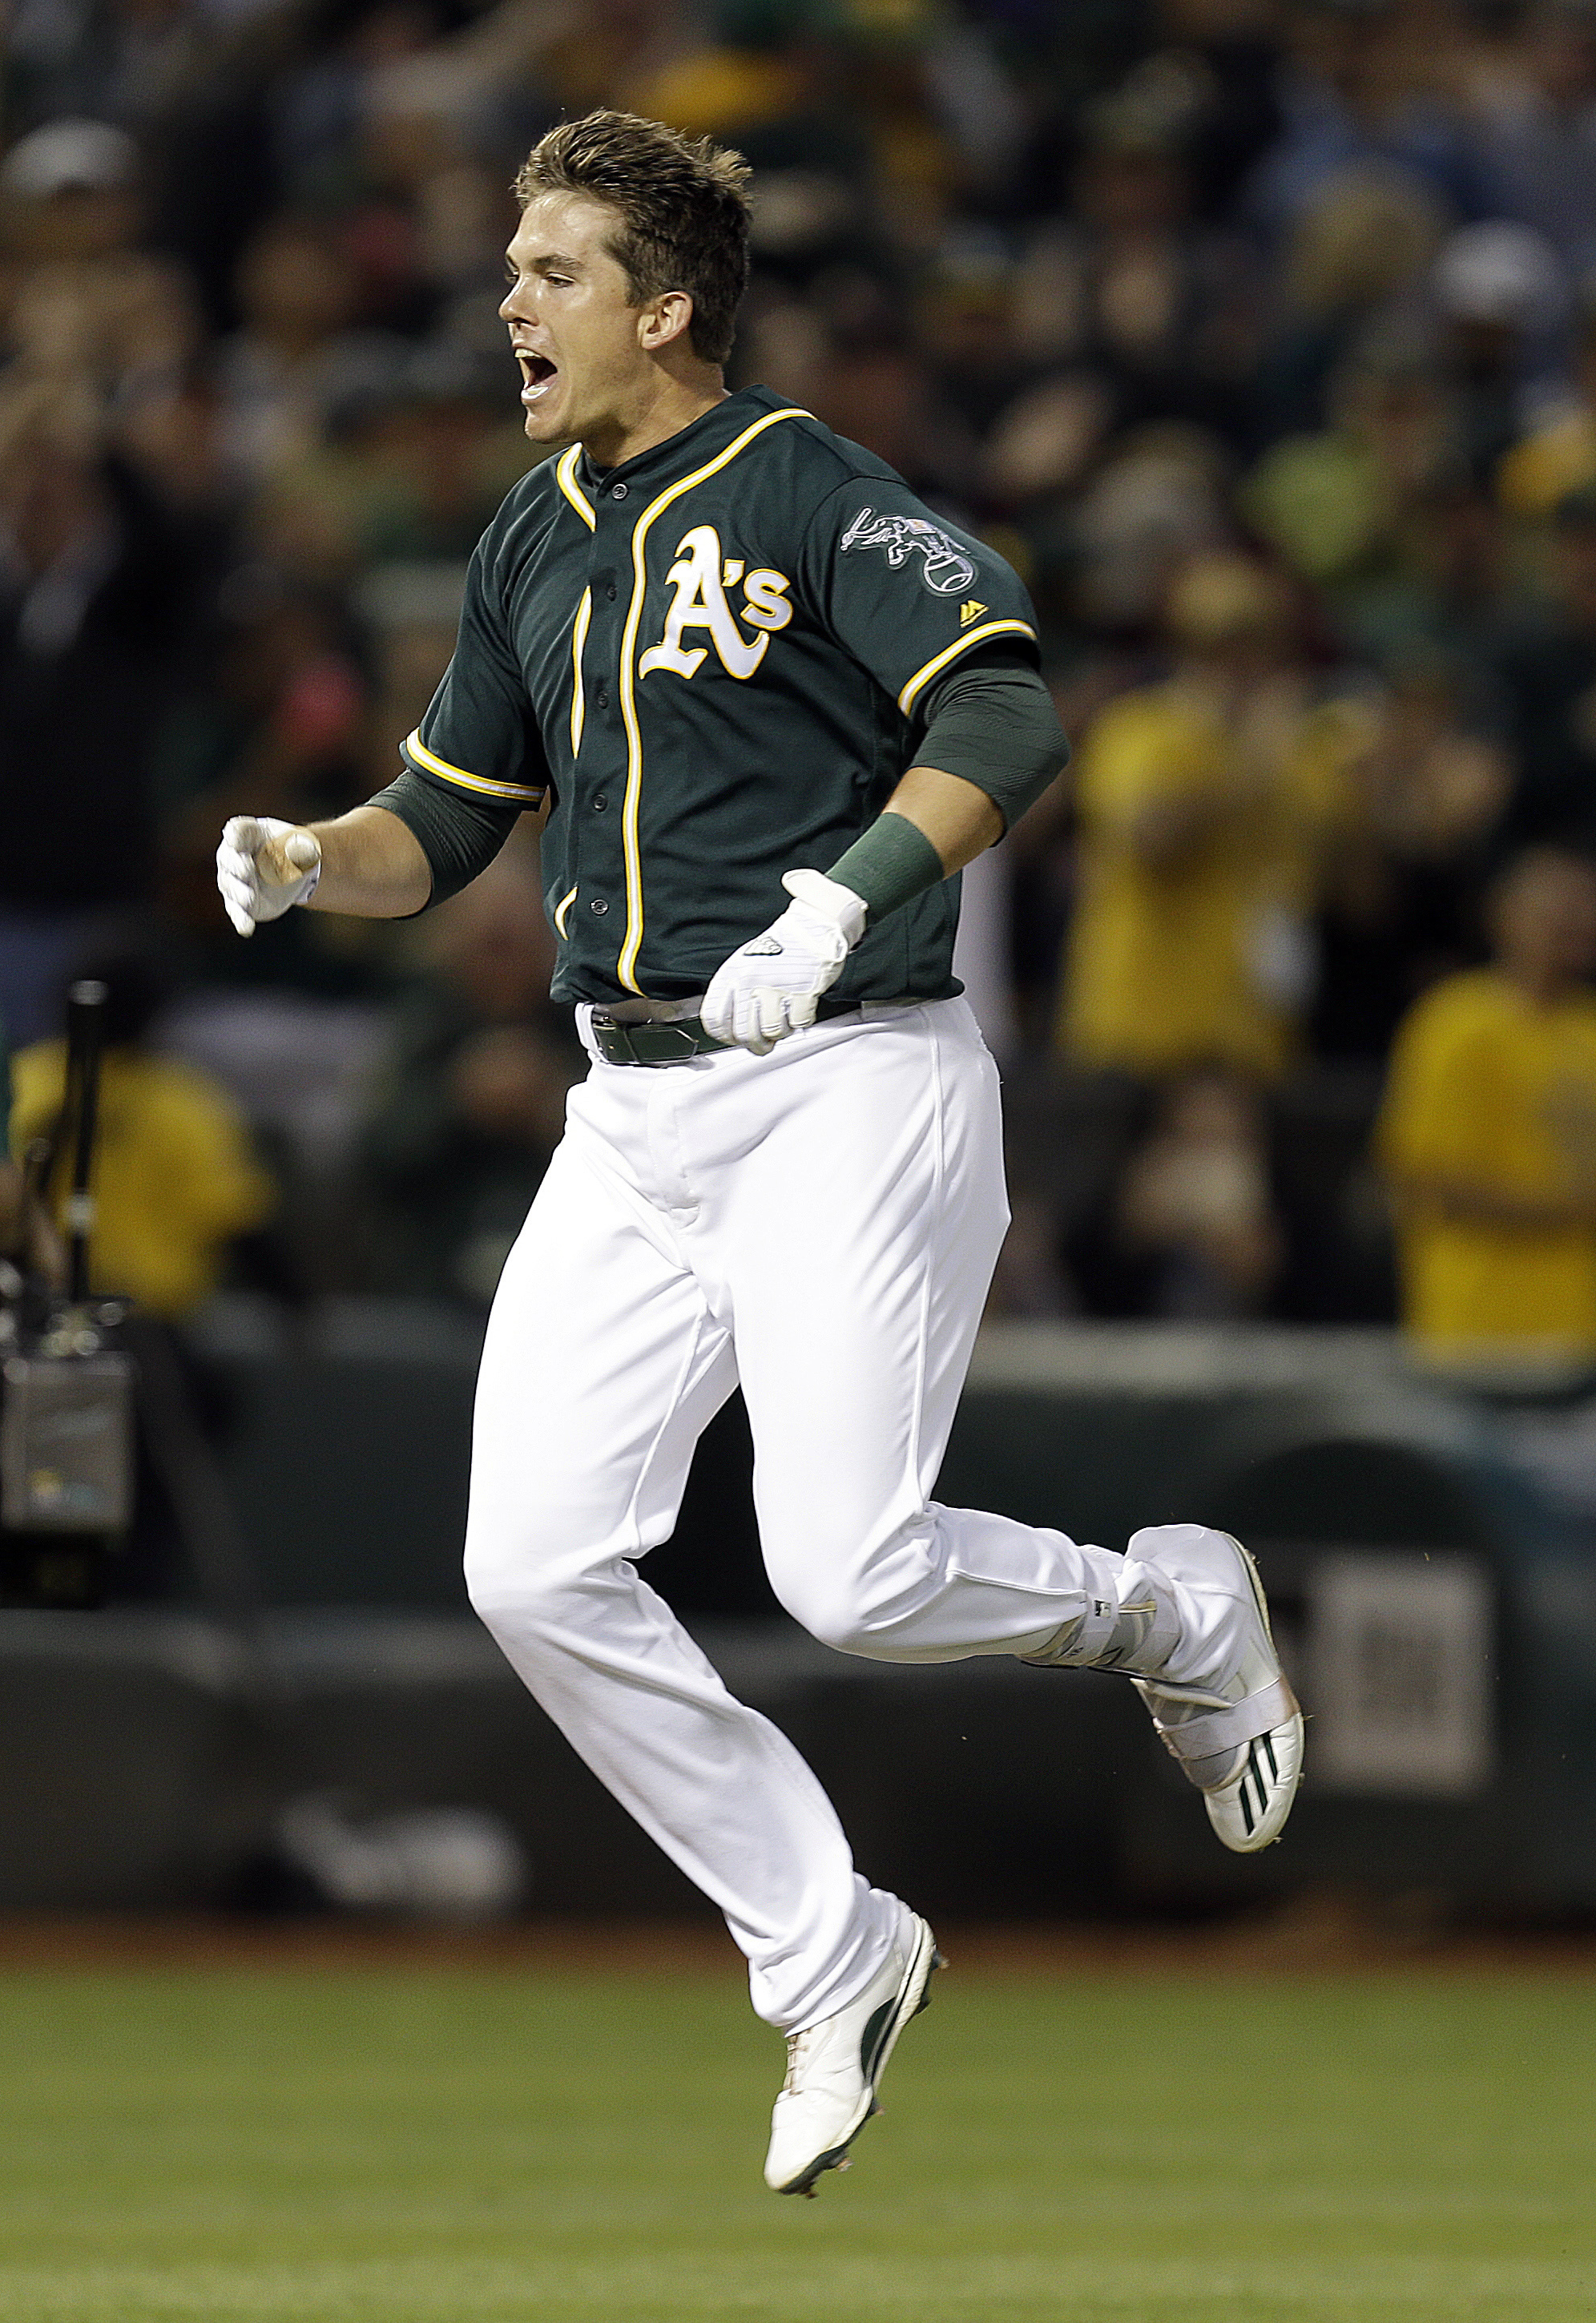 Oakland Athletics' Ryon Healy celebrates after hitting the game-winning home run off Tampa Bay Rays' Alex Colome during the ninth inning of a baseball game Saturday, July 23, 2016, in Oakland, Calif. The A's won 4-3. (AP Photo/Ben Margot)